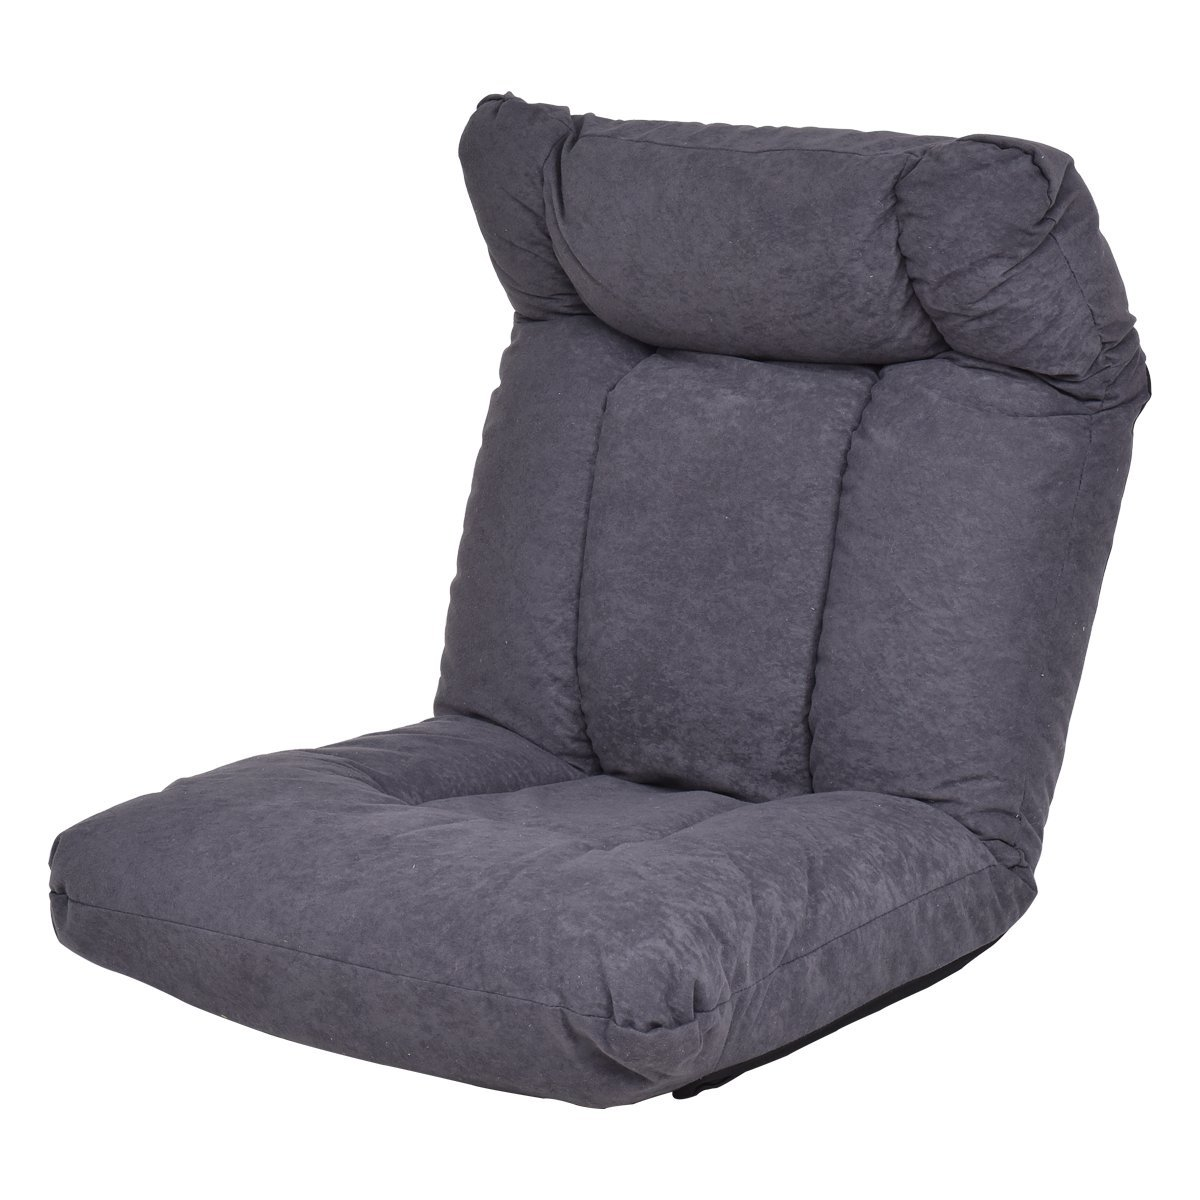 Giantex Cushioned Floor Gaming Sofa Chair Adjustable Folding Lazy Recliner w/Headrest